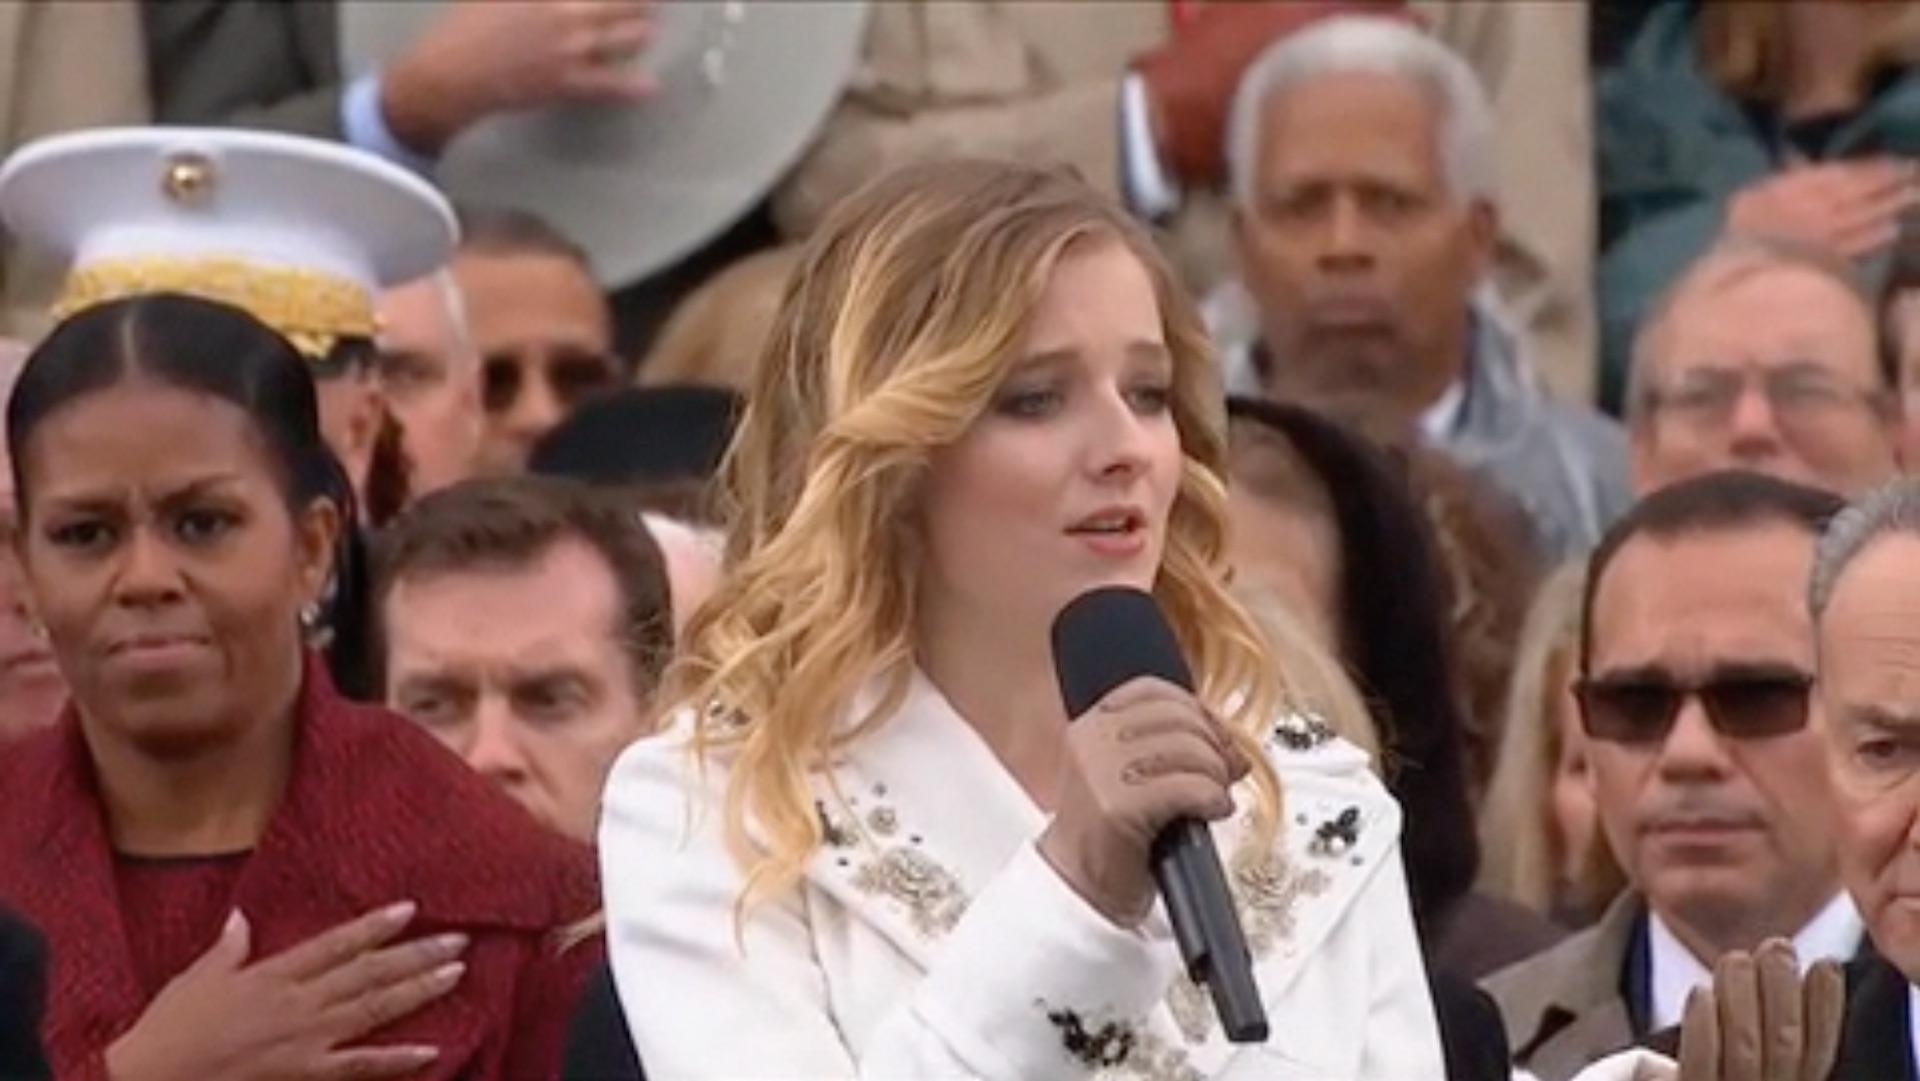 Jackie Evancho, who sang the national anthem at Trump's inauguration, asks for a meeting on transgender rights